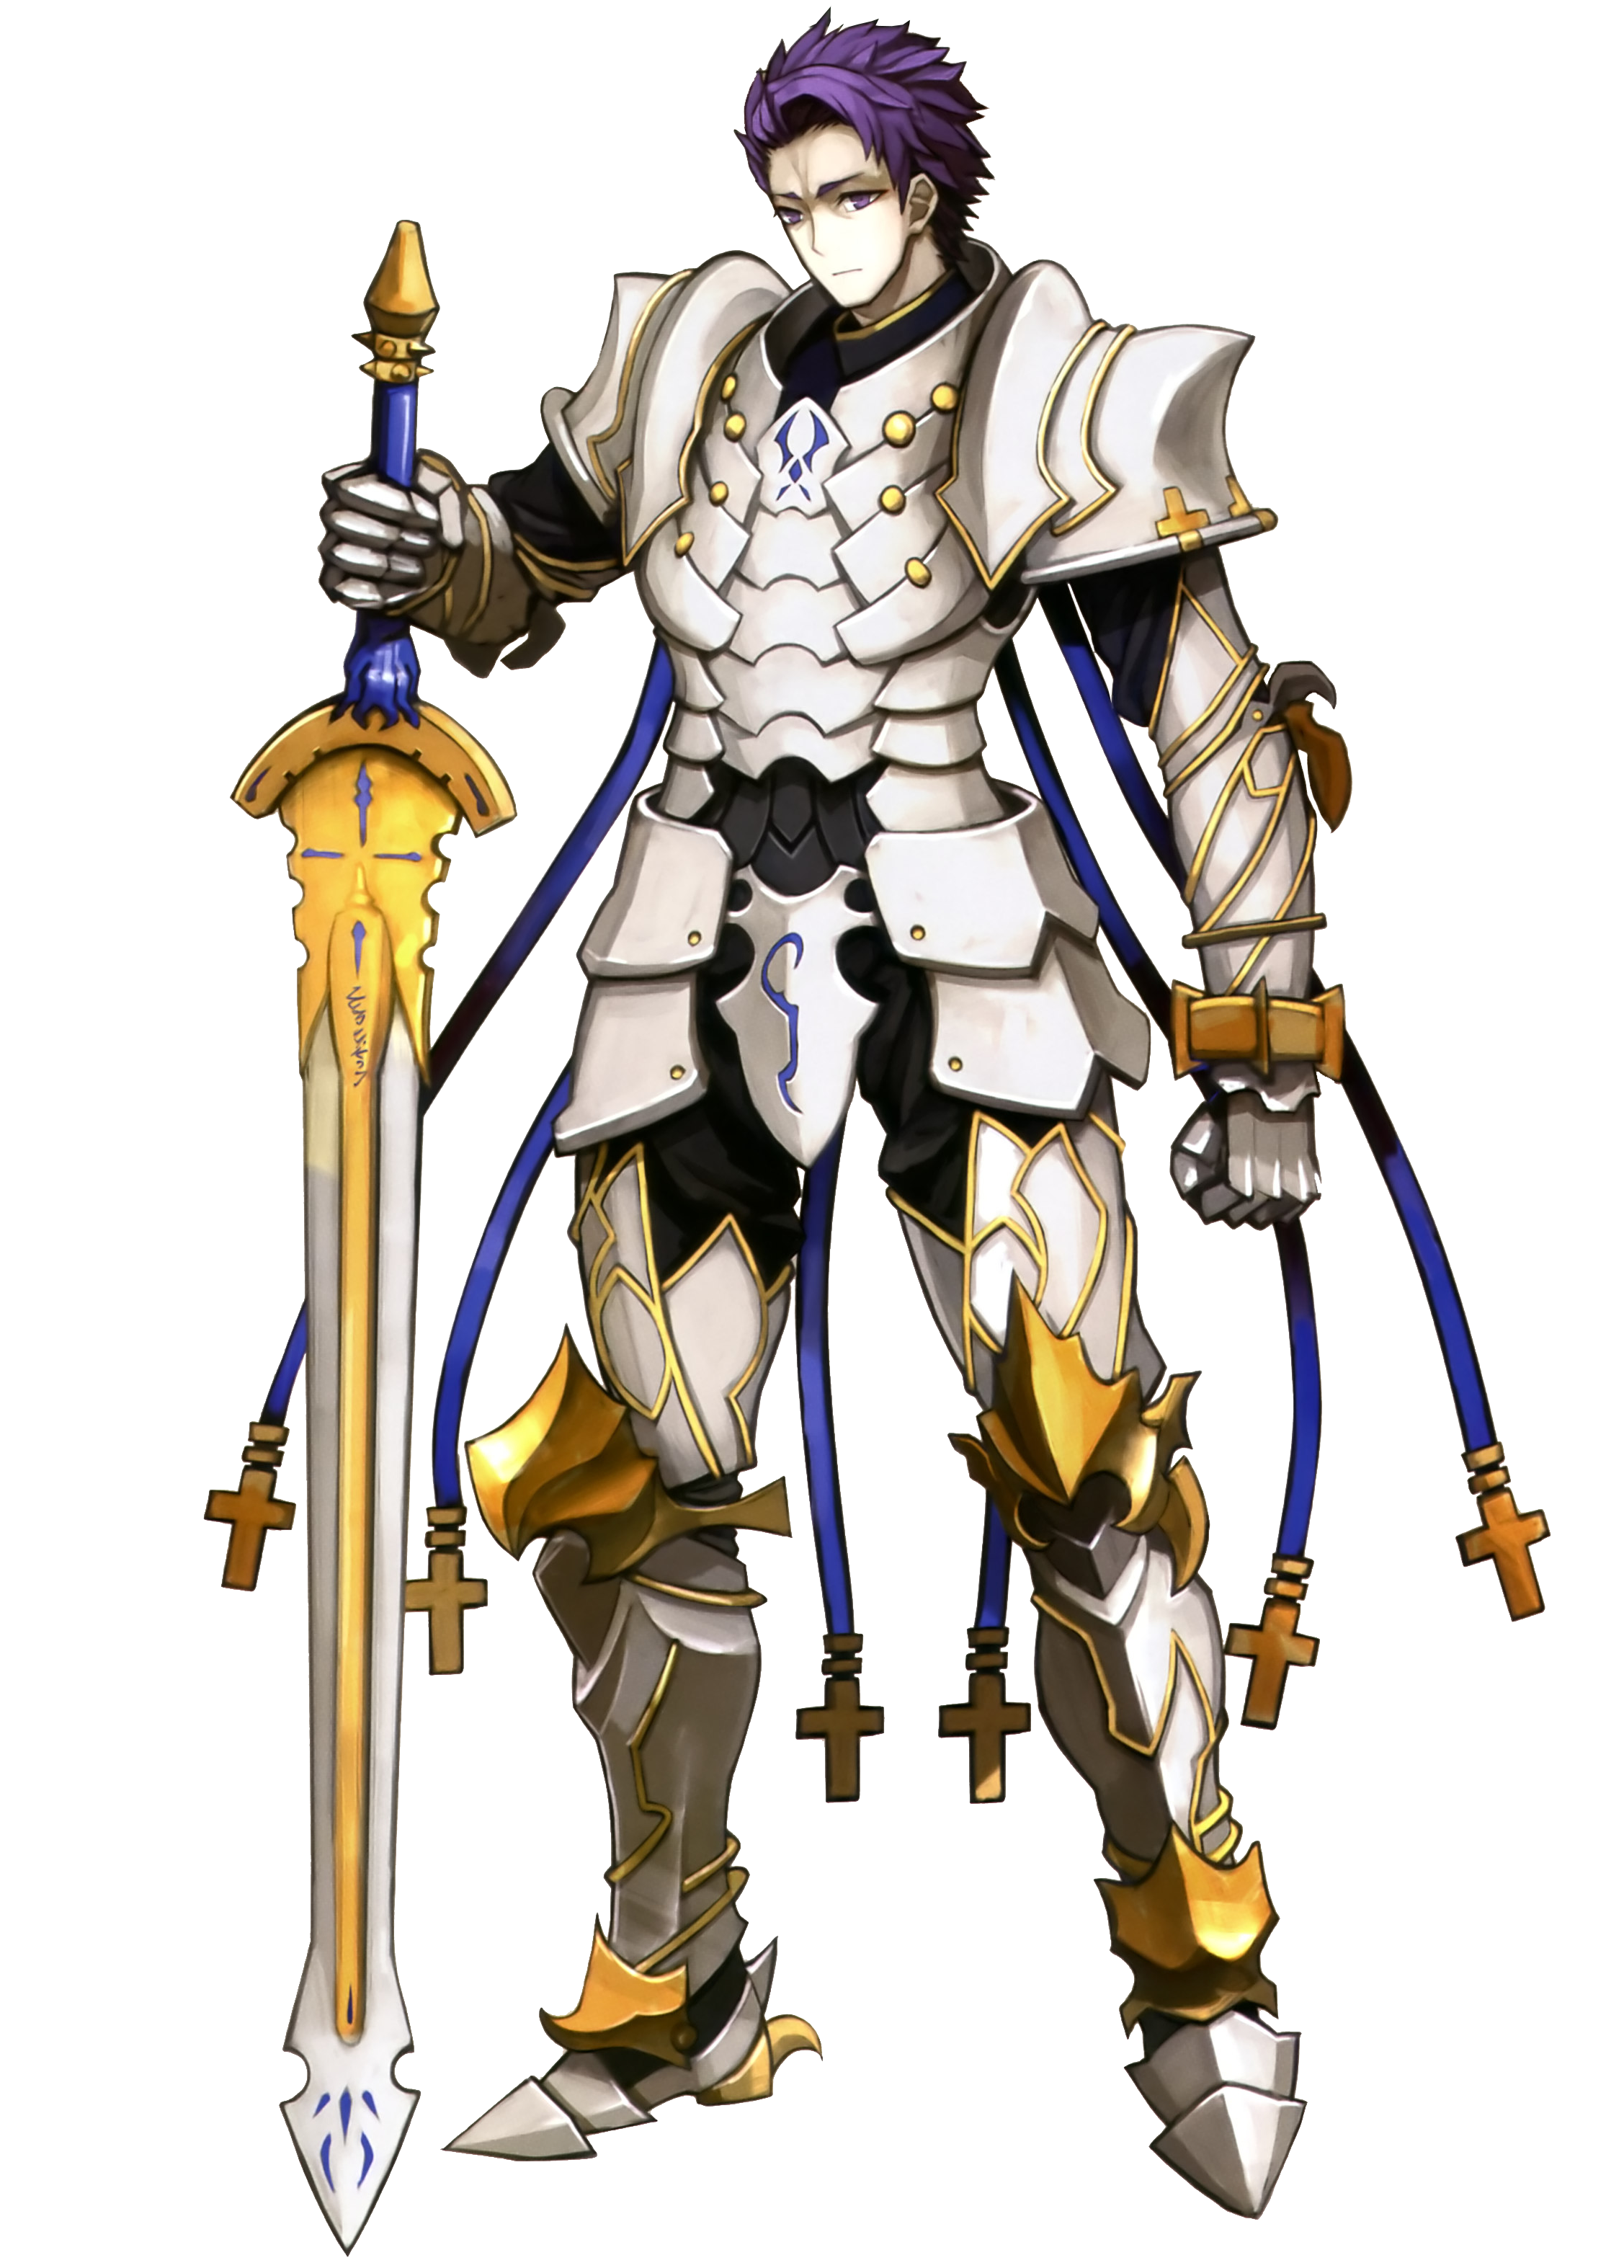 Saber of Fate/Grand Order Saber real identity is Sir